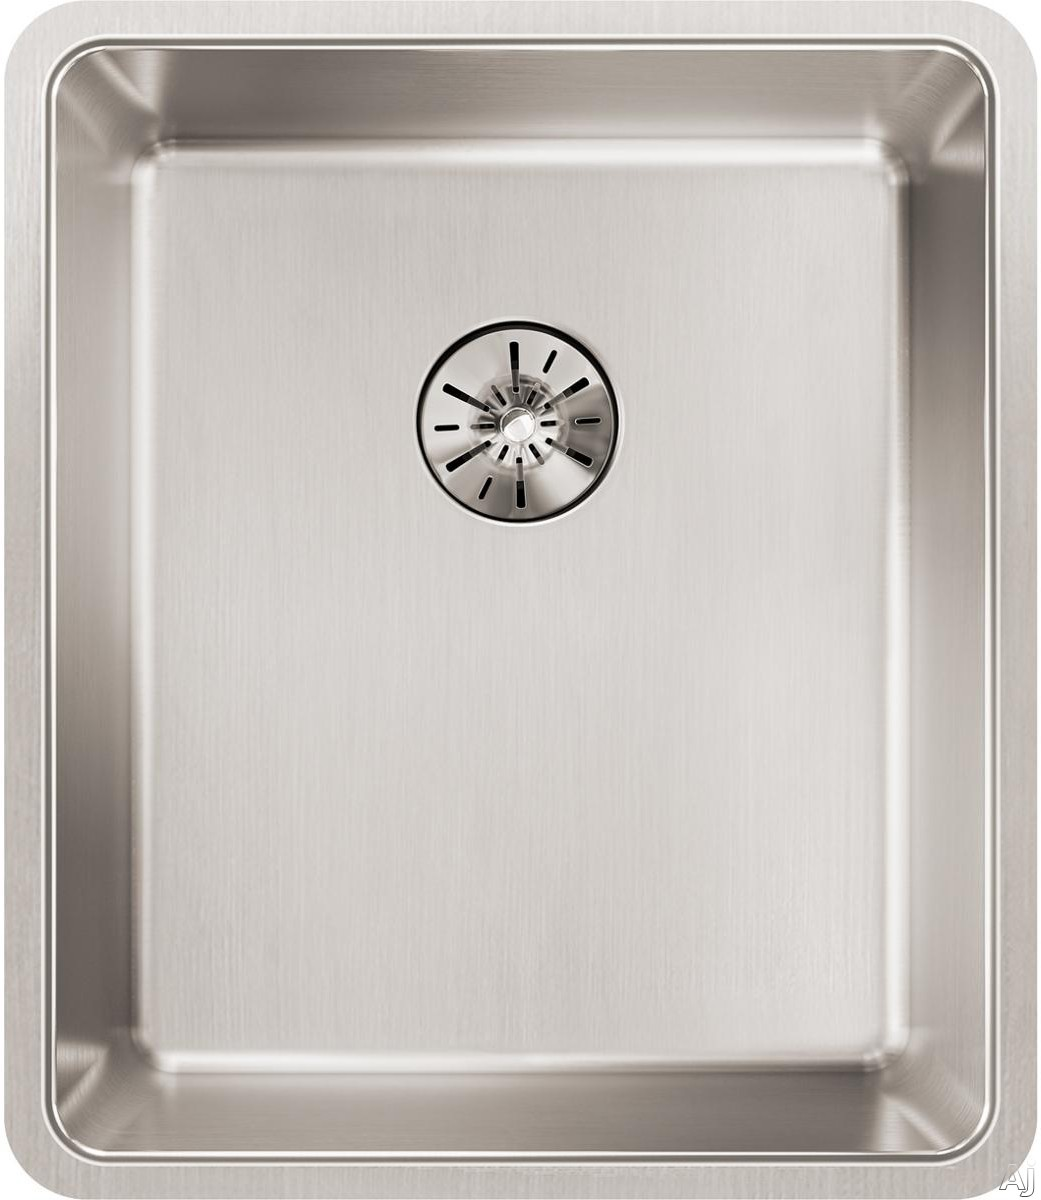 Elkay Lustertone Collection ETRU13168PD 16 Inch Iconix Single Bowl Kitchen Sink and Perfect Drain with 16-Gauge Stainless Steel, Sound Deadening Pads and Perfect Drain